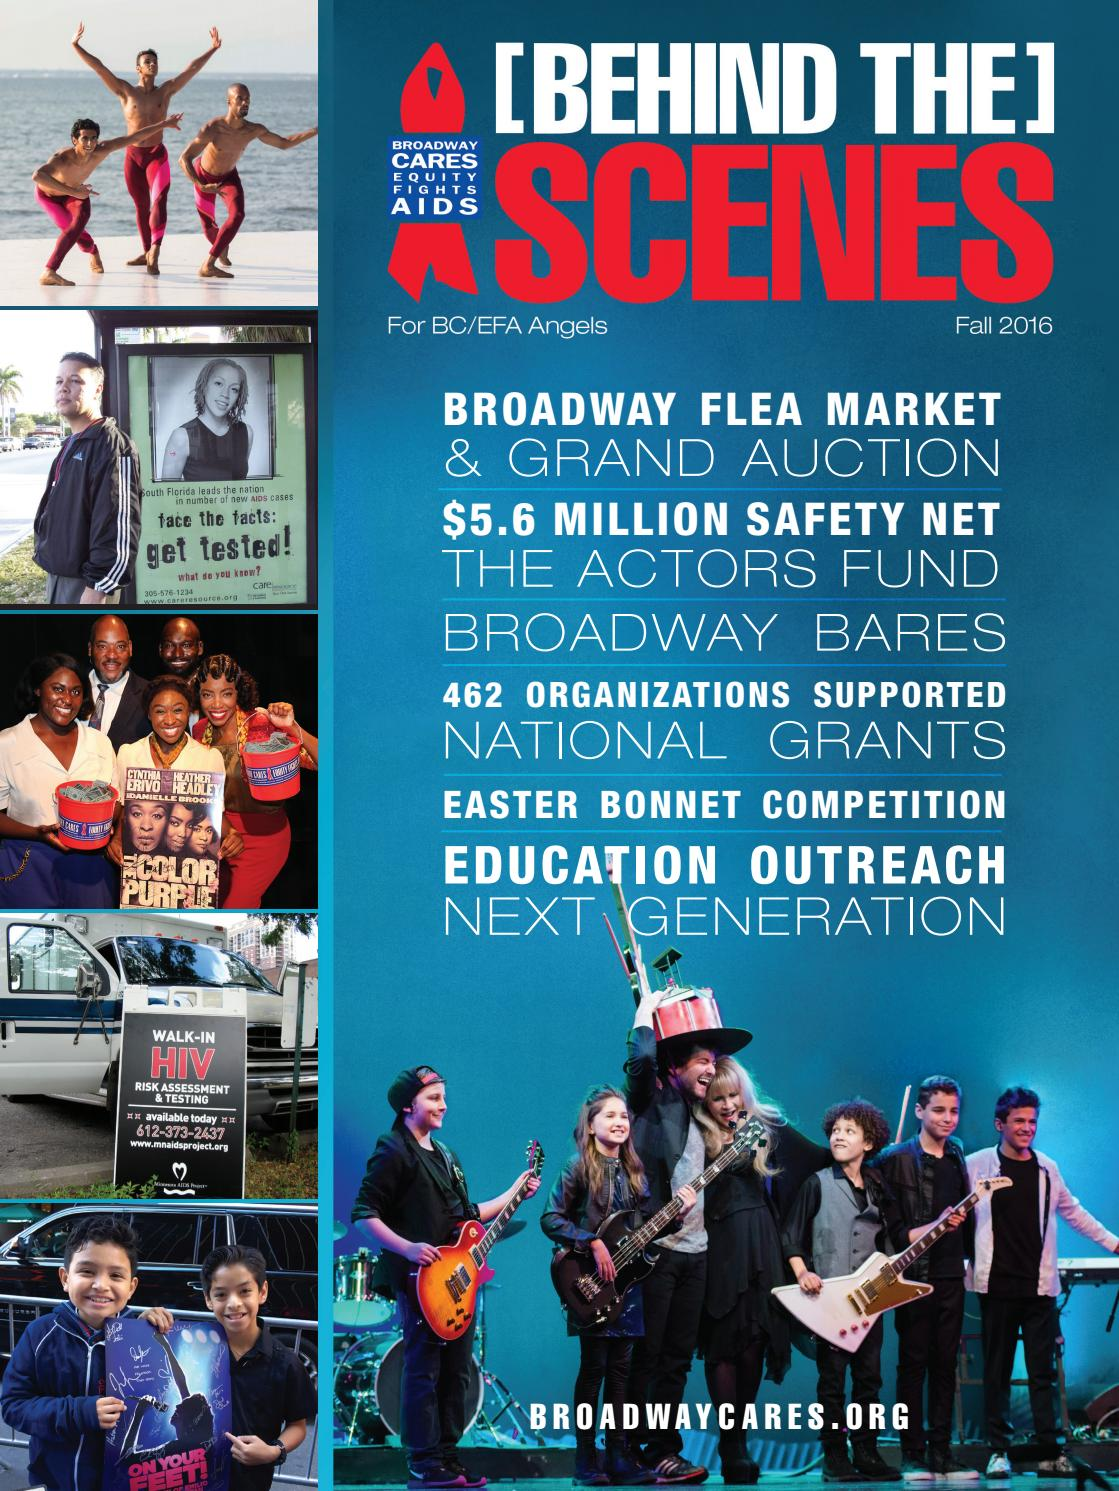 Behind the Scenes Fall 2016 by Broadway Cares/Equity Fights AIDS - issuu